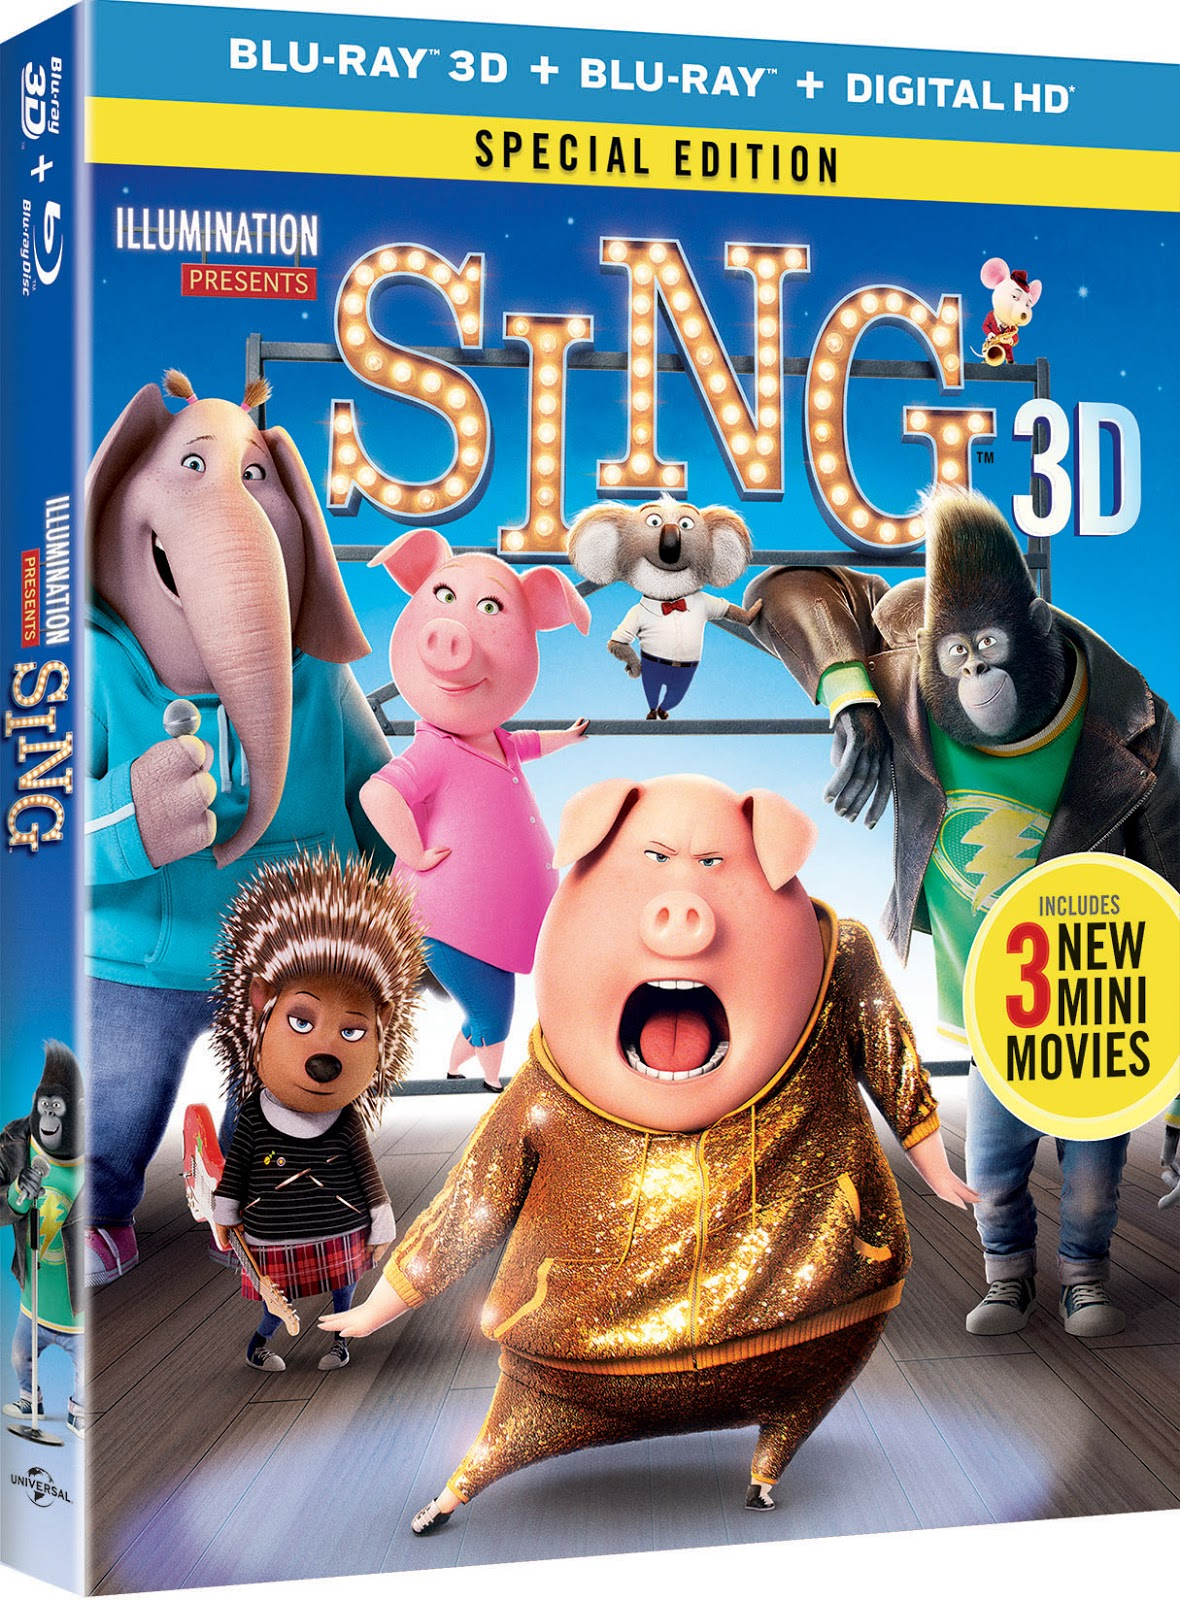 enter sing movie giveaway five will win ends 3 16. Black Bedroom Furniture Sets. Home Design Ideas